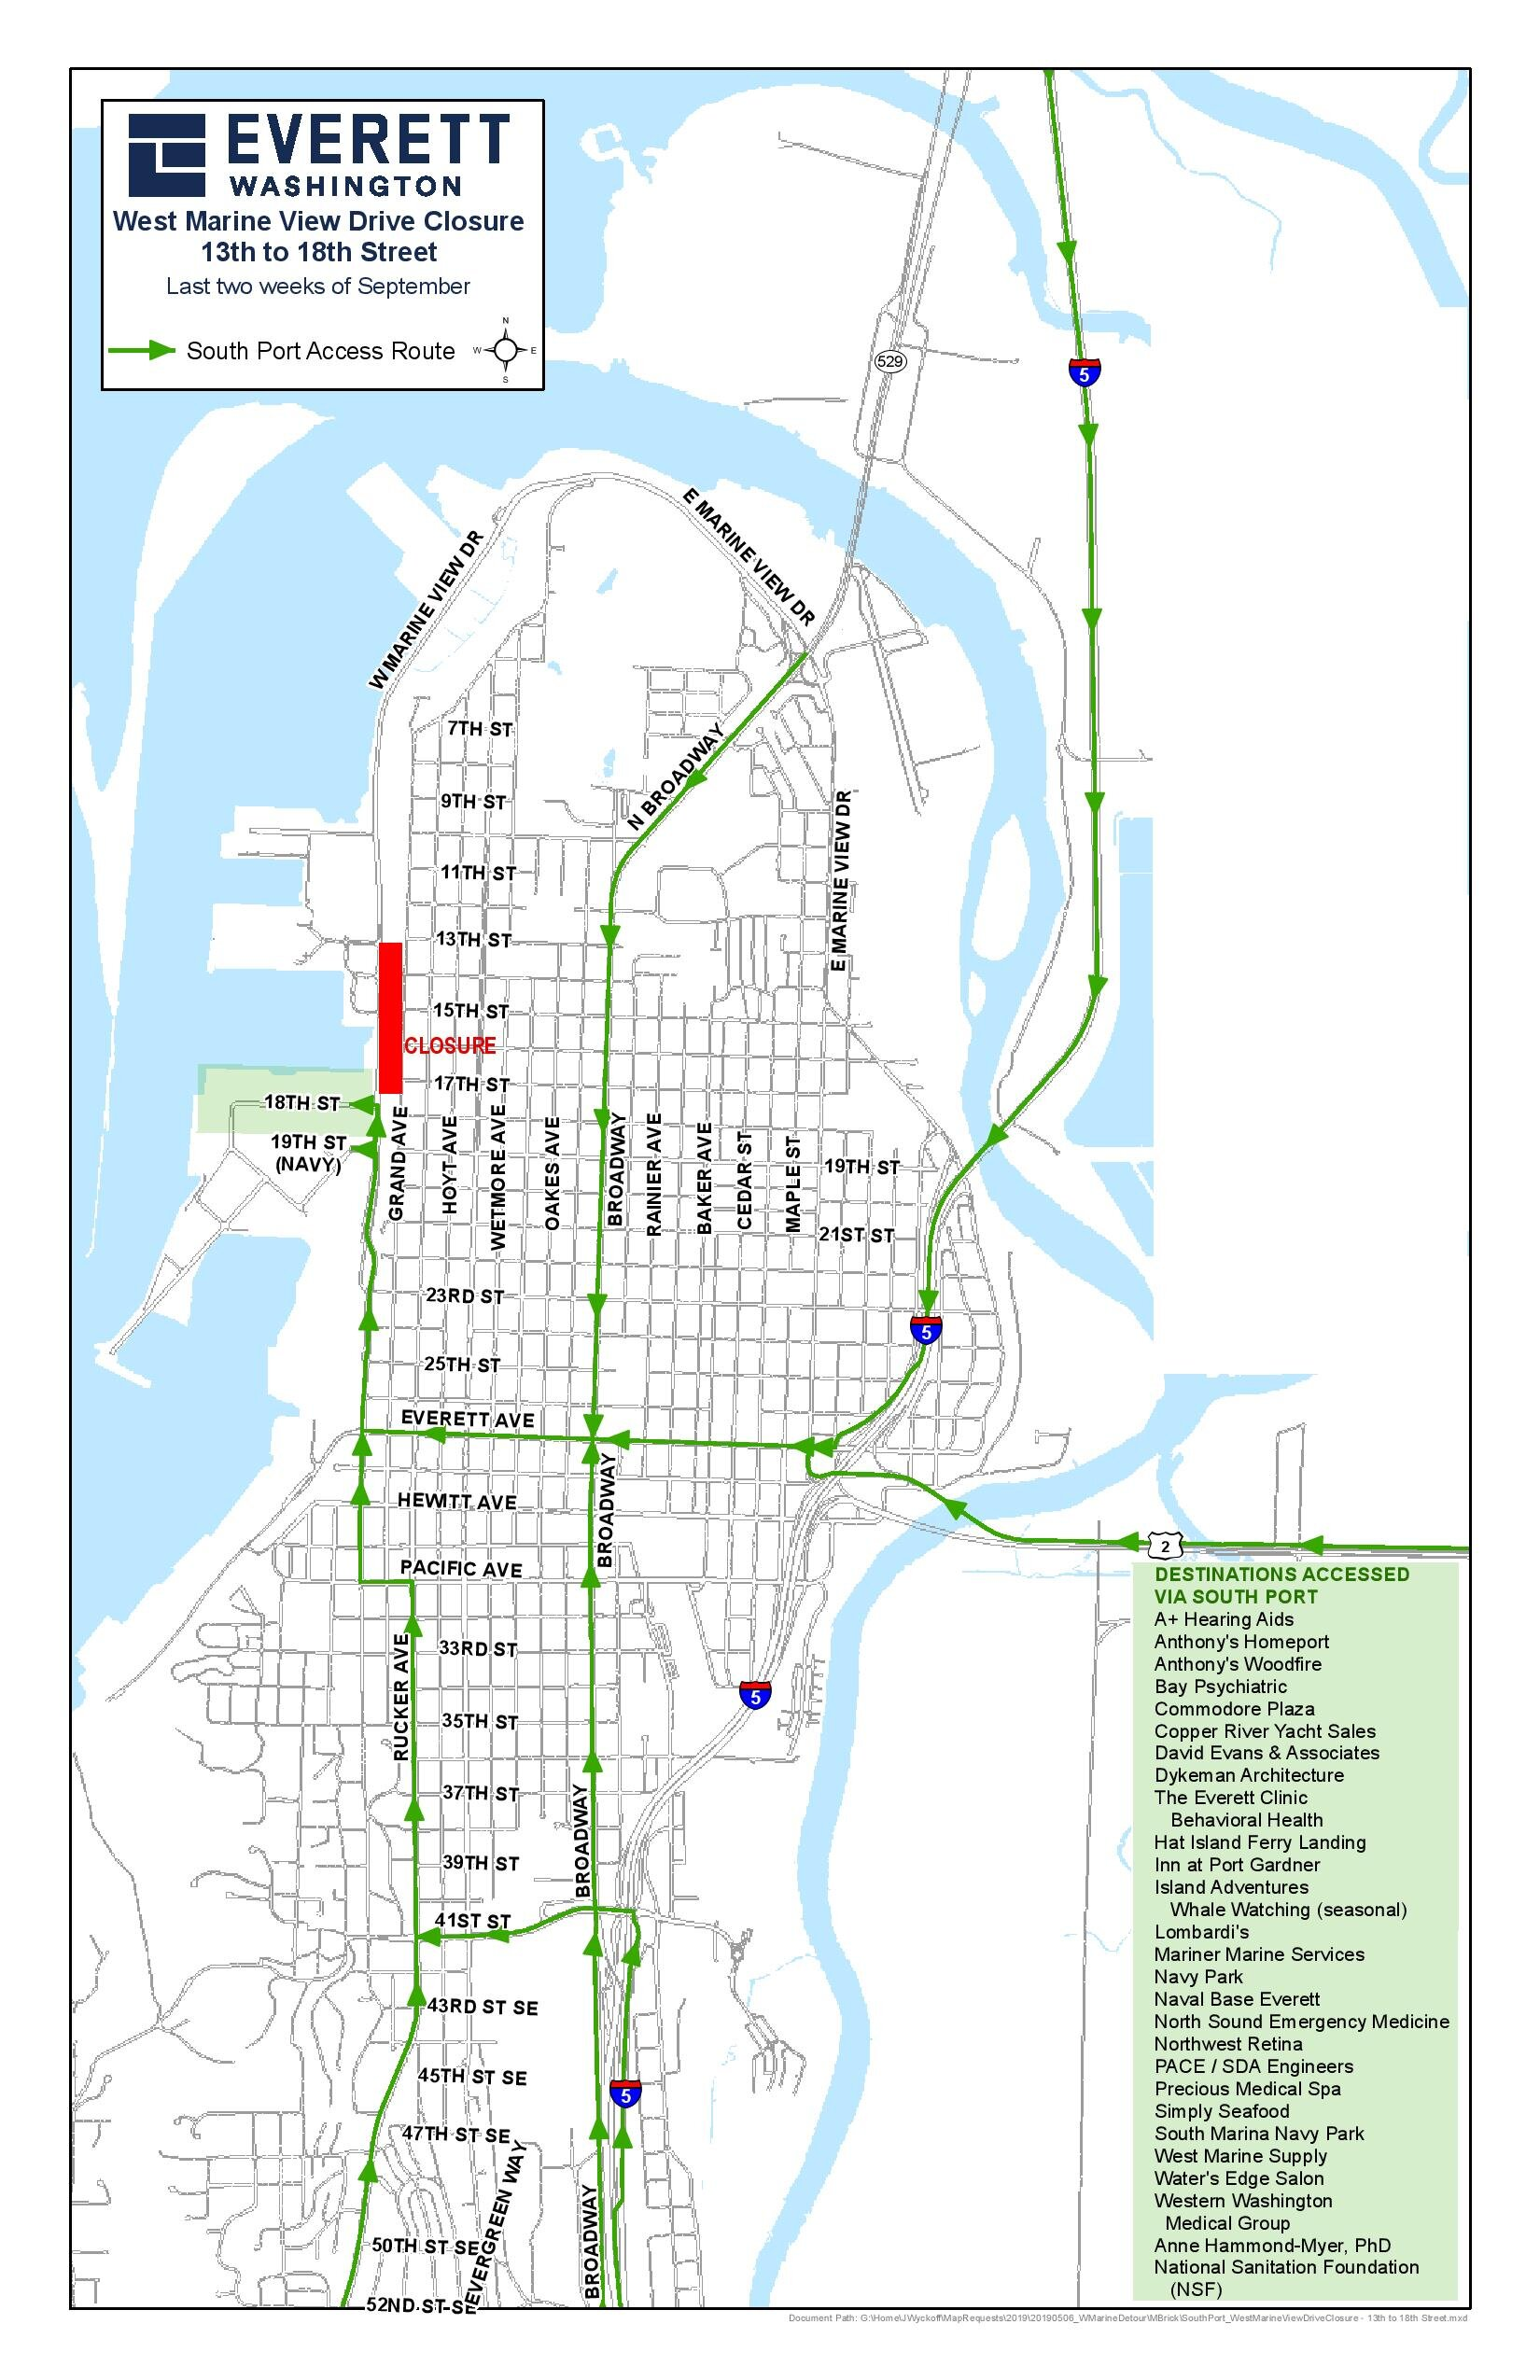 SouthPort_WestMarineViewDriveClosure - 13th to 18th Street-page-001.jpg